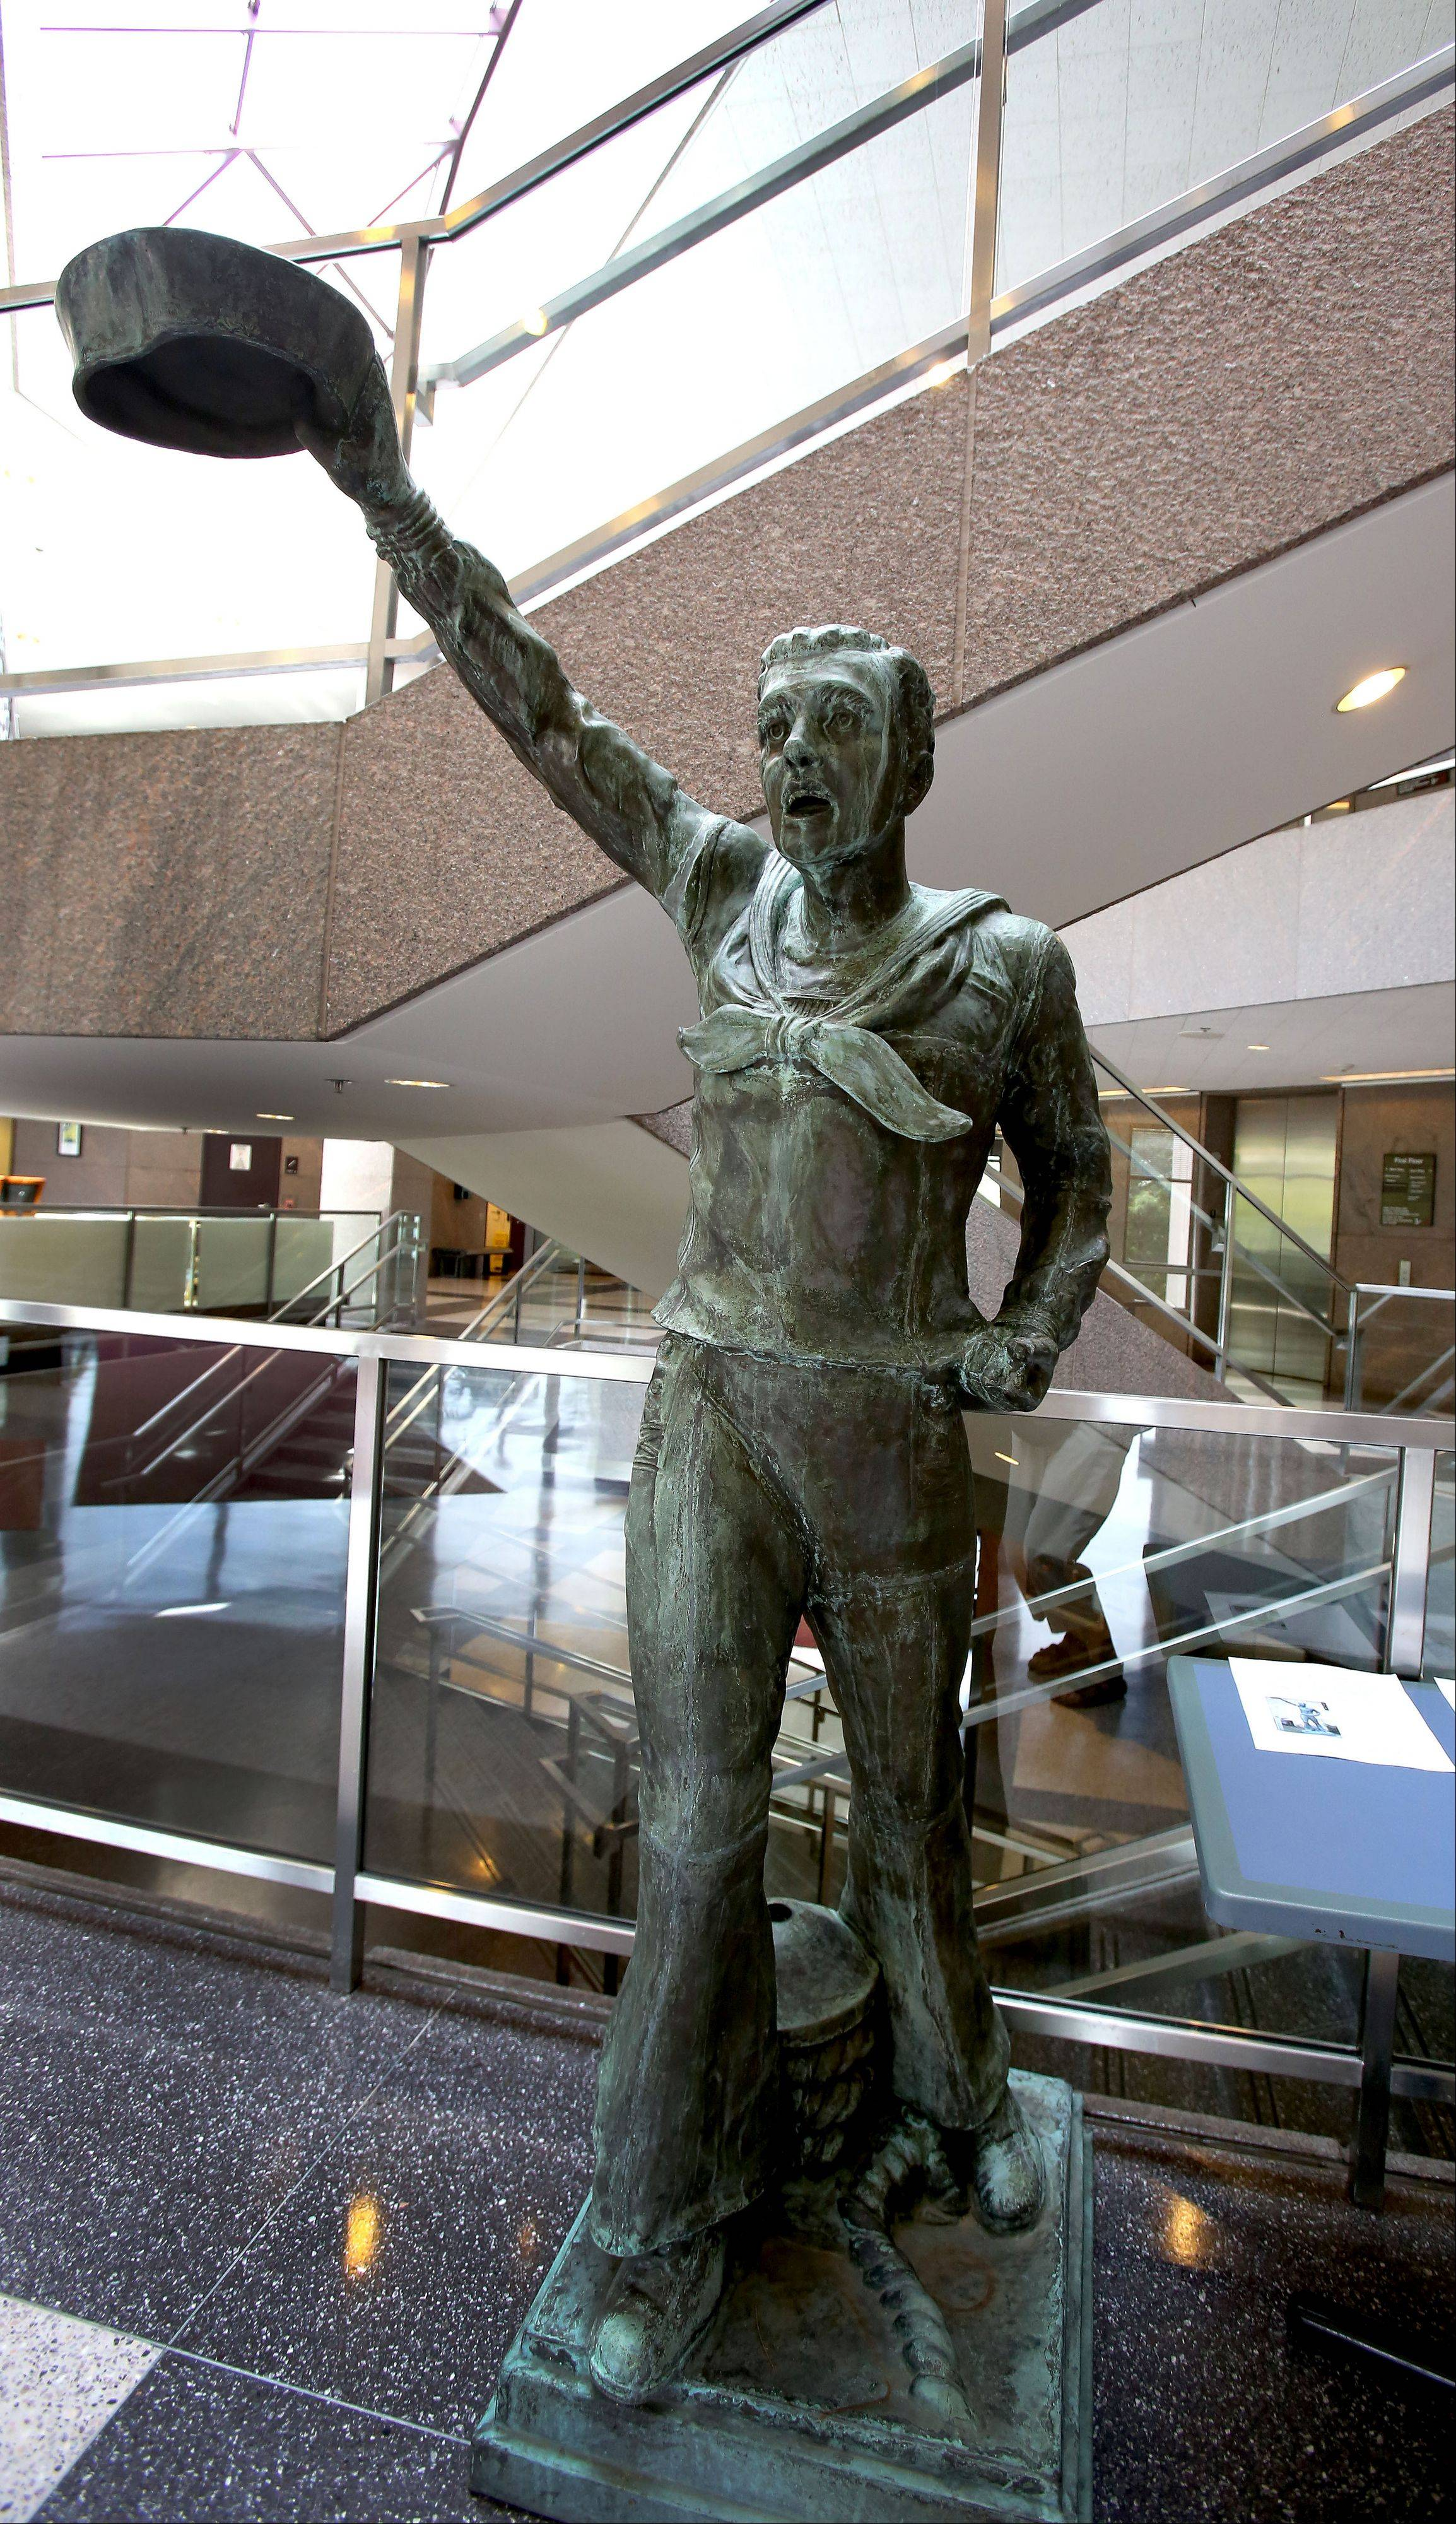 Naperville�s Century Walk Corp. is turning to the crowdfunding website, Citizinvestor, to help raise the last $27,000 it needs to install this 1920s-era sculpture of a sailor called �Spirit of the American Navy� by Oct. 13 in Burlington Square Park.